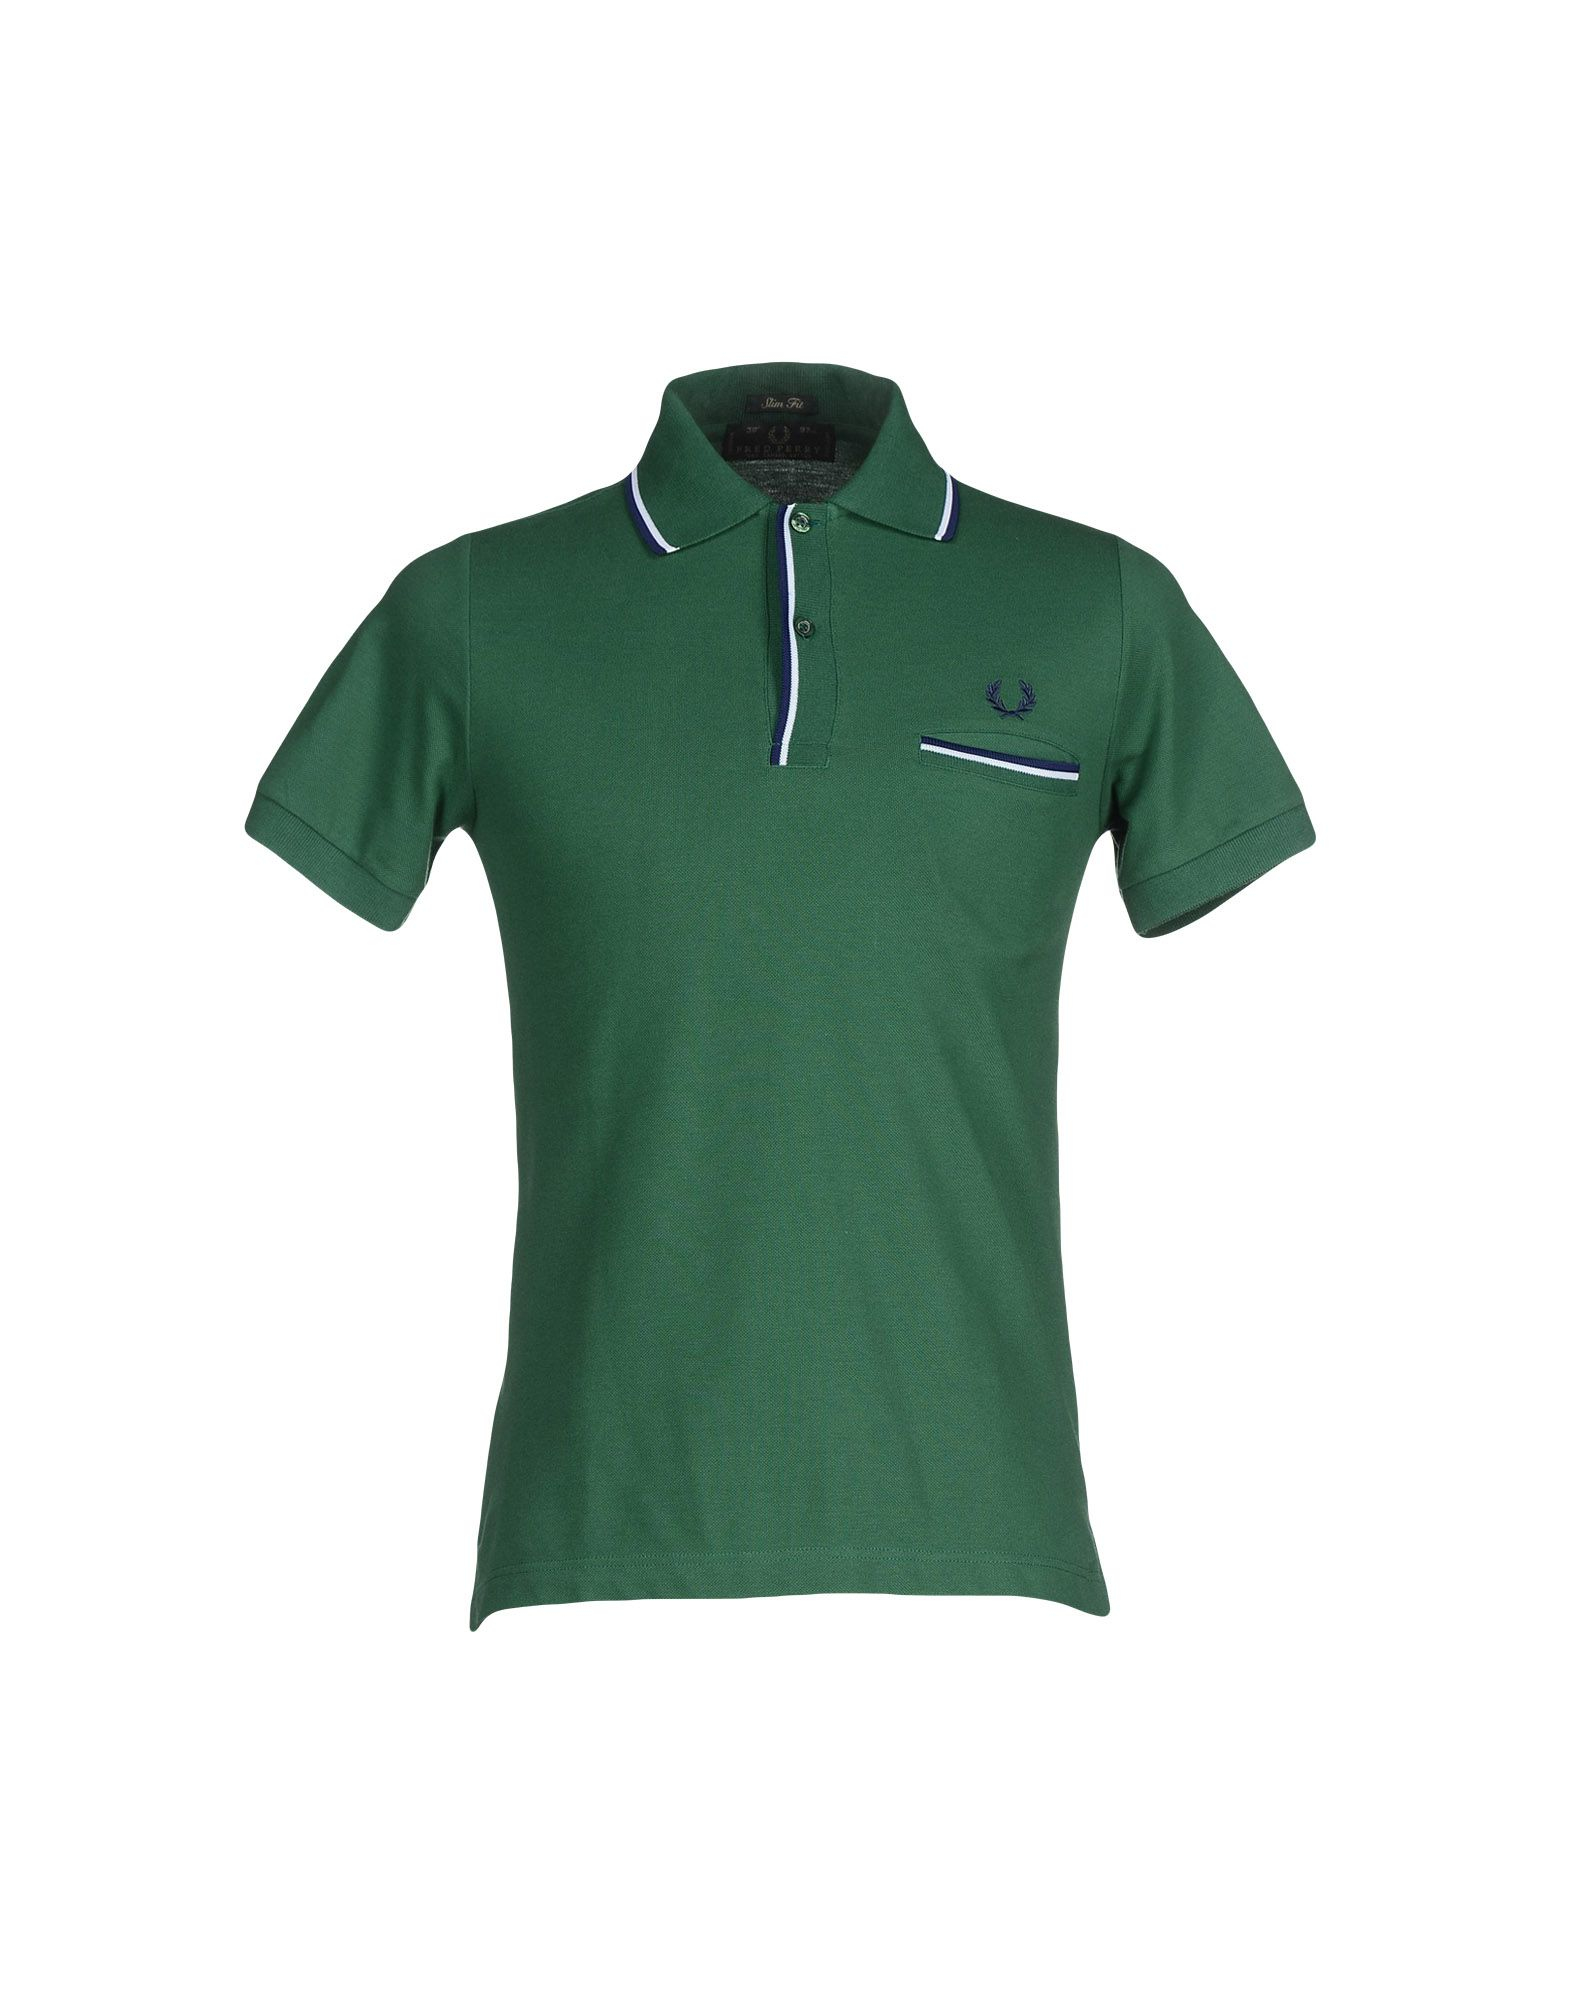 Stussy polo shirt in green for men emerald green lyst Emerald green mens dress shirt